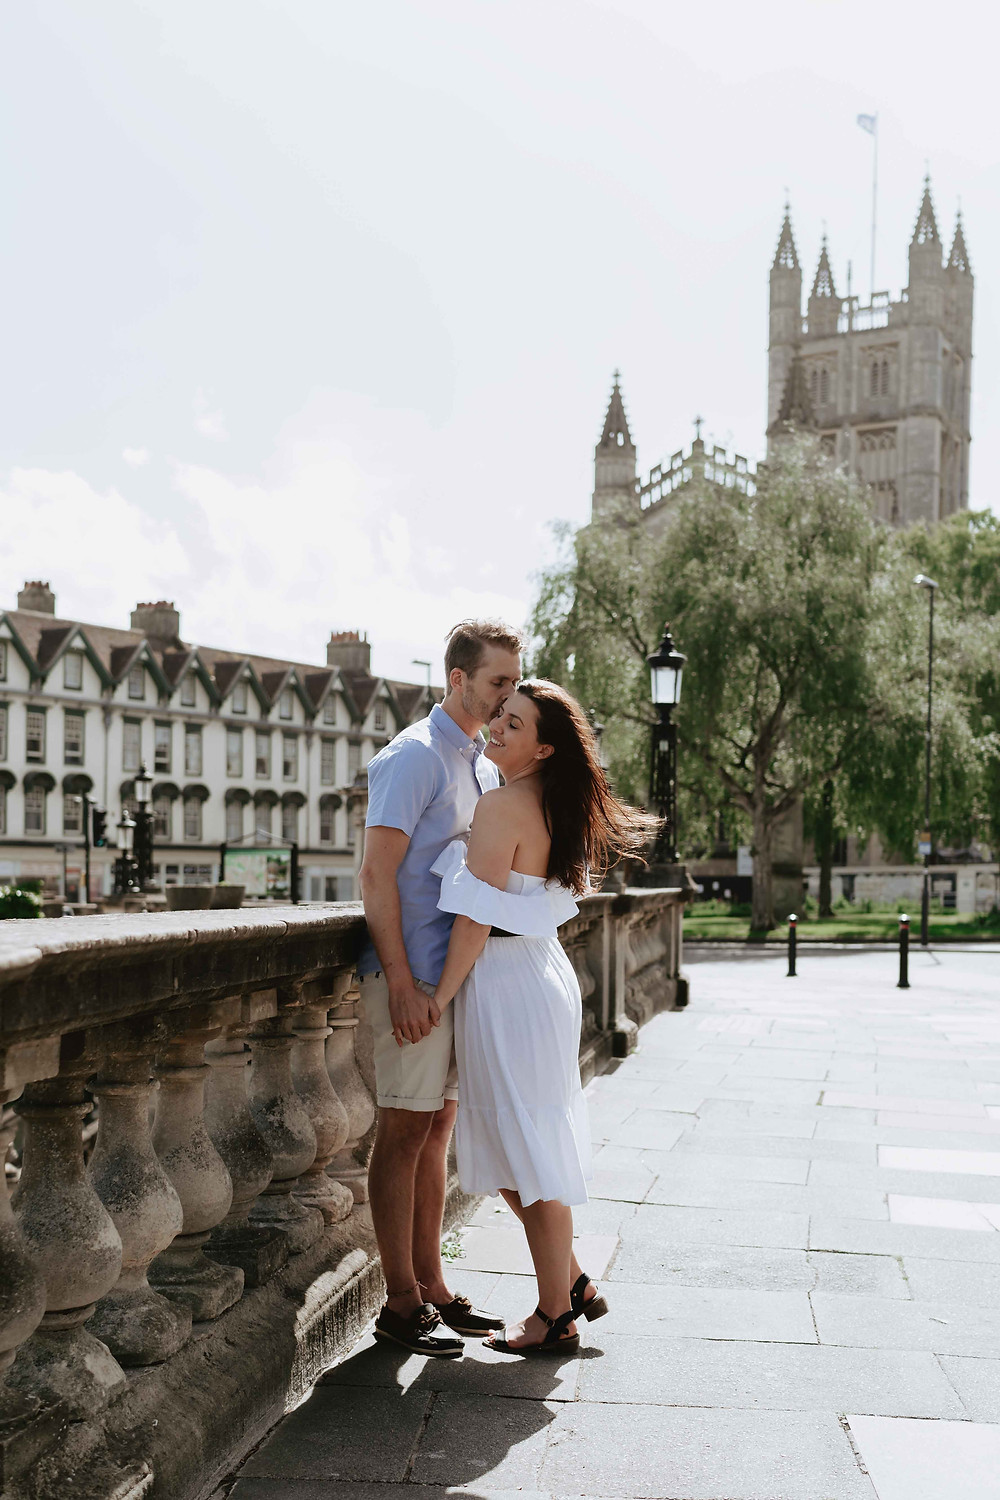 Pre-Wedding Photo Shoot in Bath City. Heather Bailey Photography